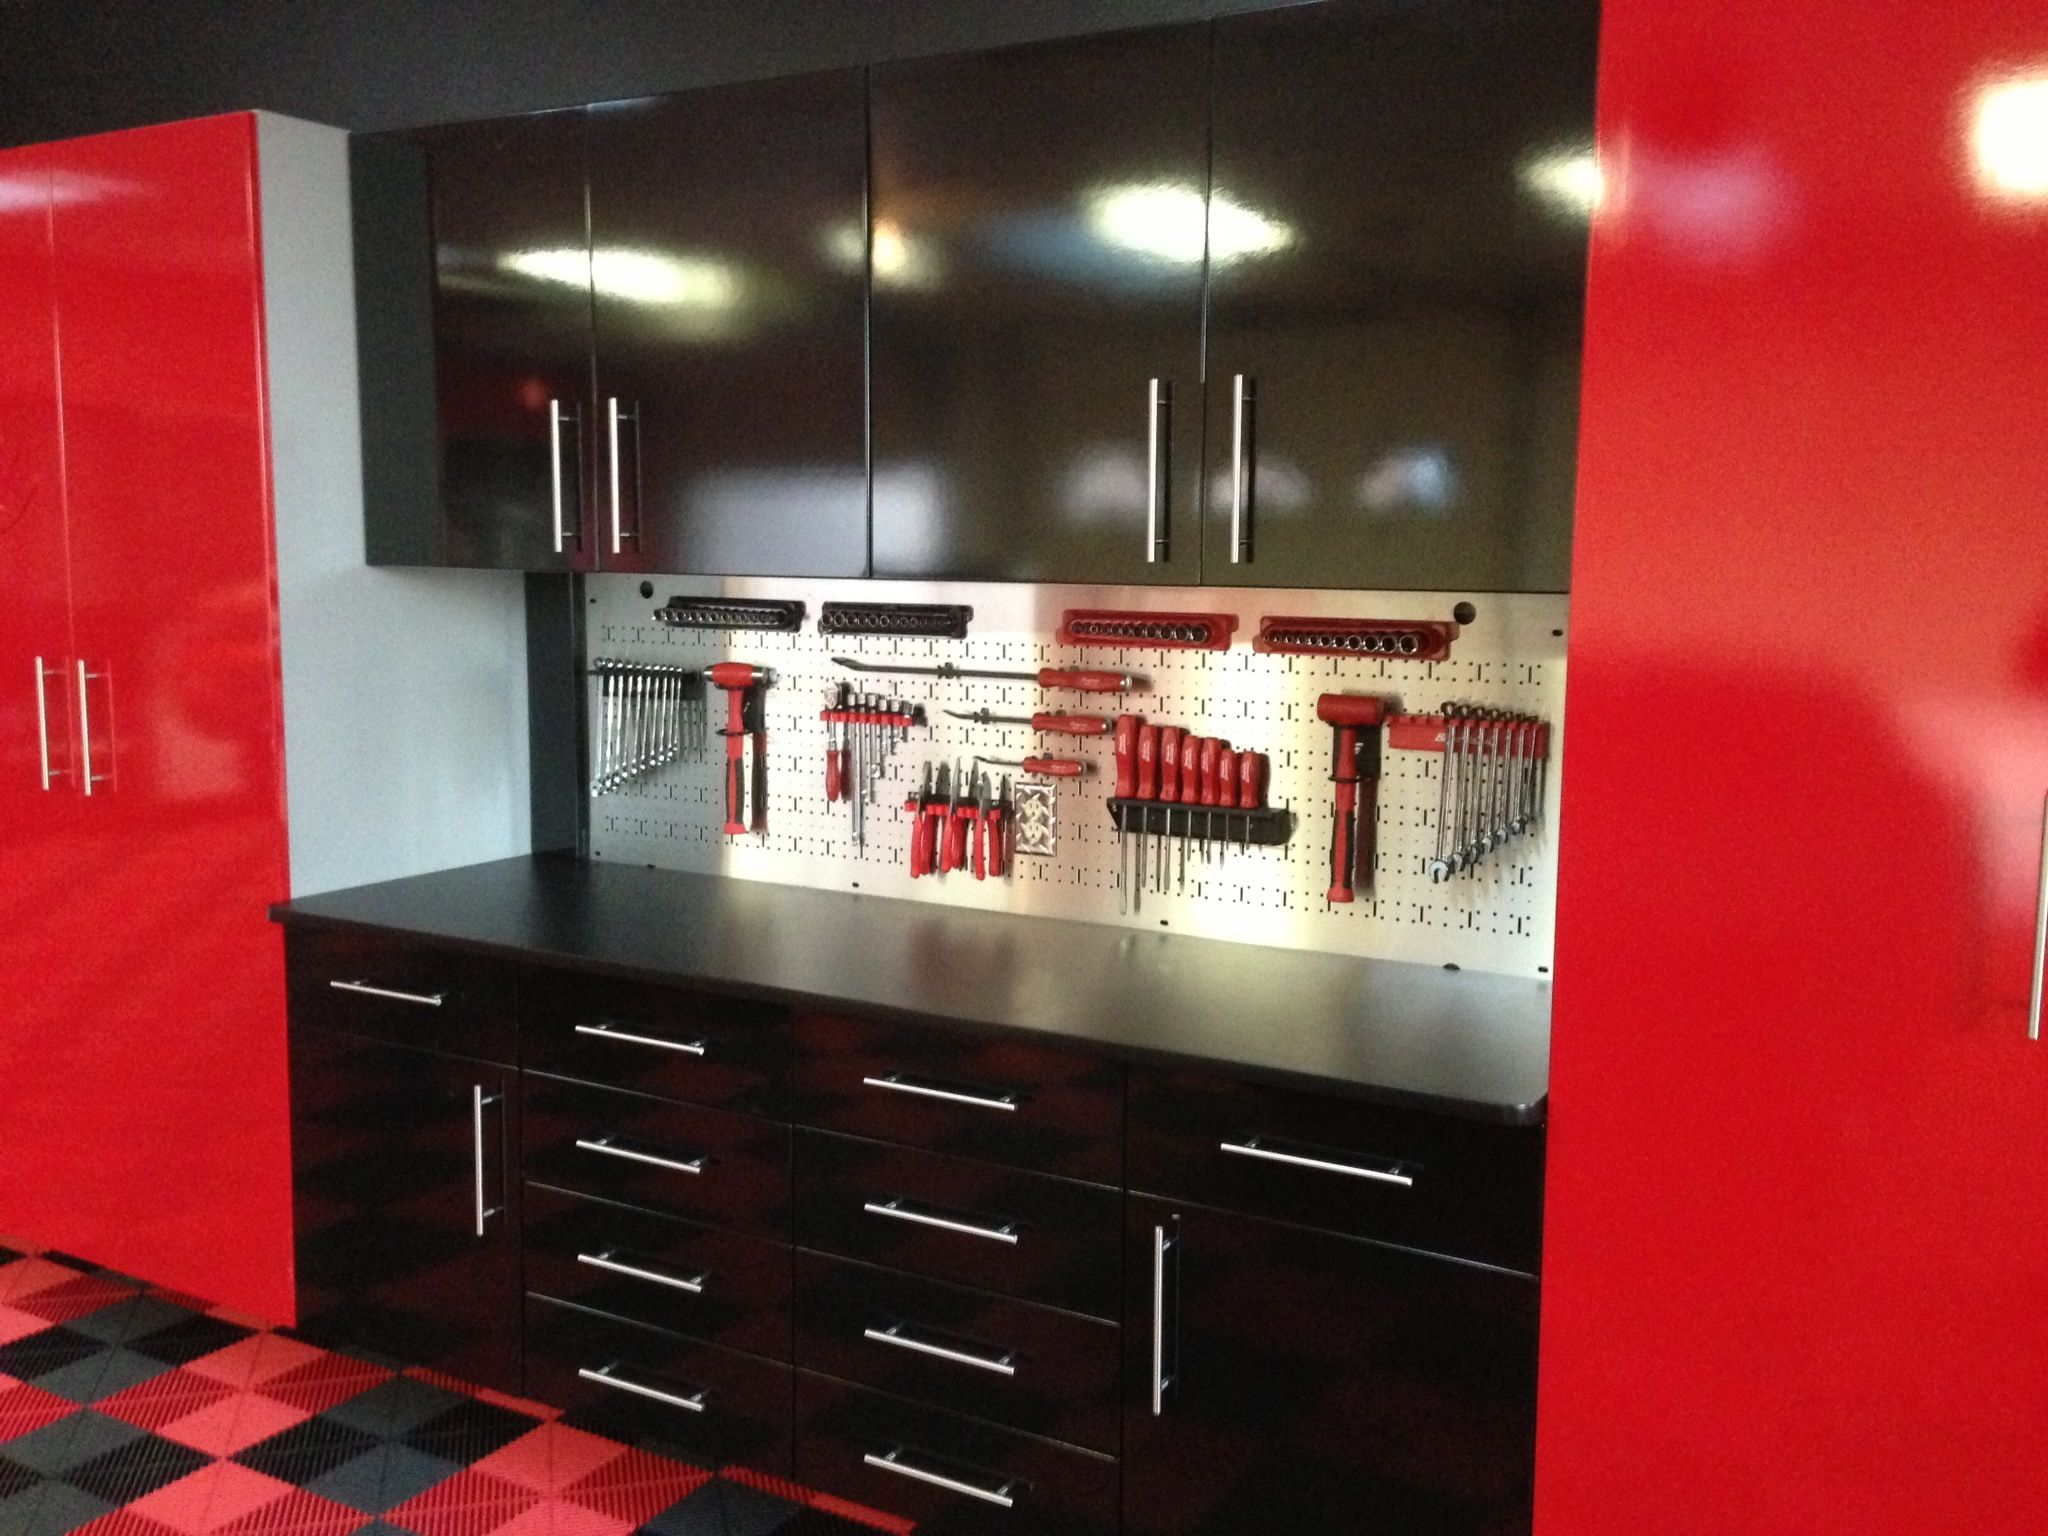 This Homeowner Used Our High Gloss Finish For Their Garage Cabinets Swisstrax Flooring Was Used To Finish The Look Modern Flooring Garage Cabinets Homeowner